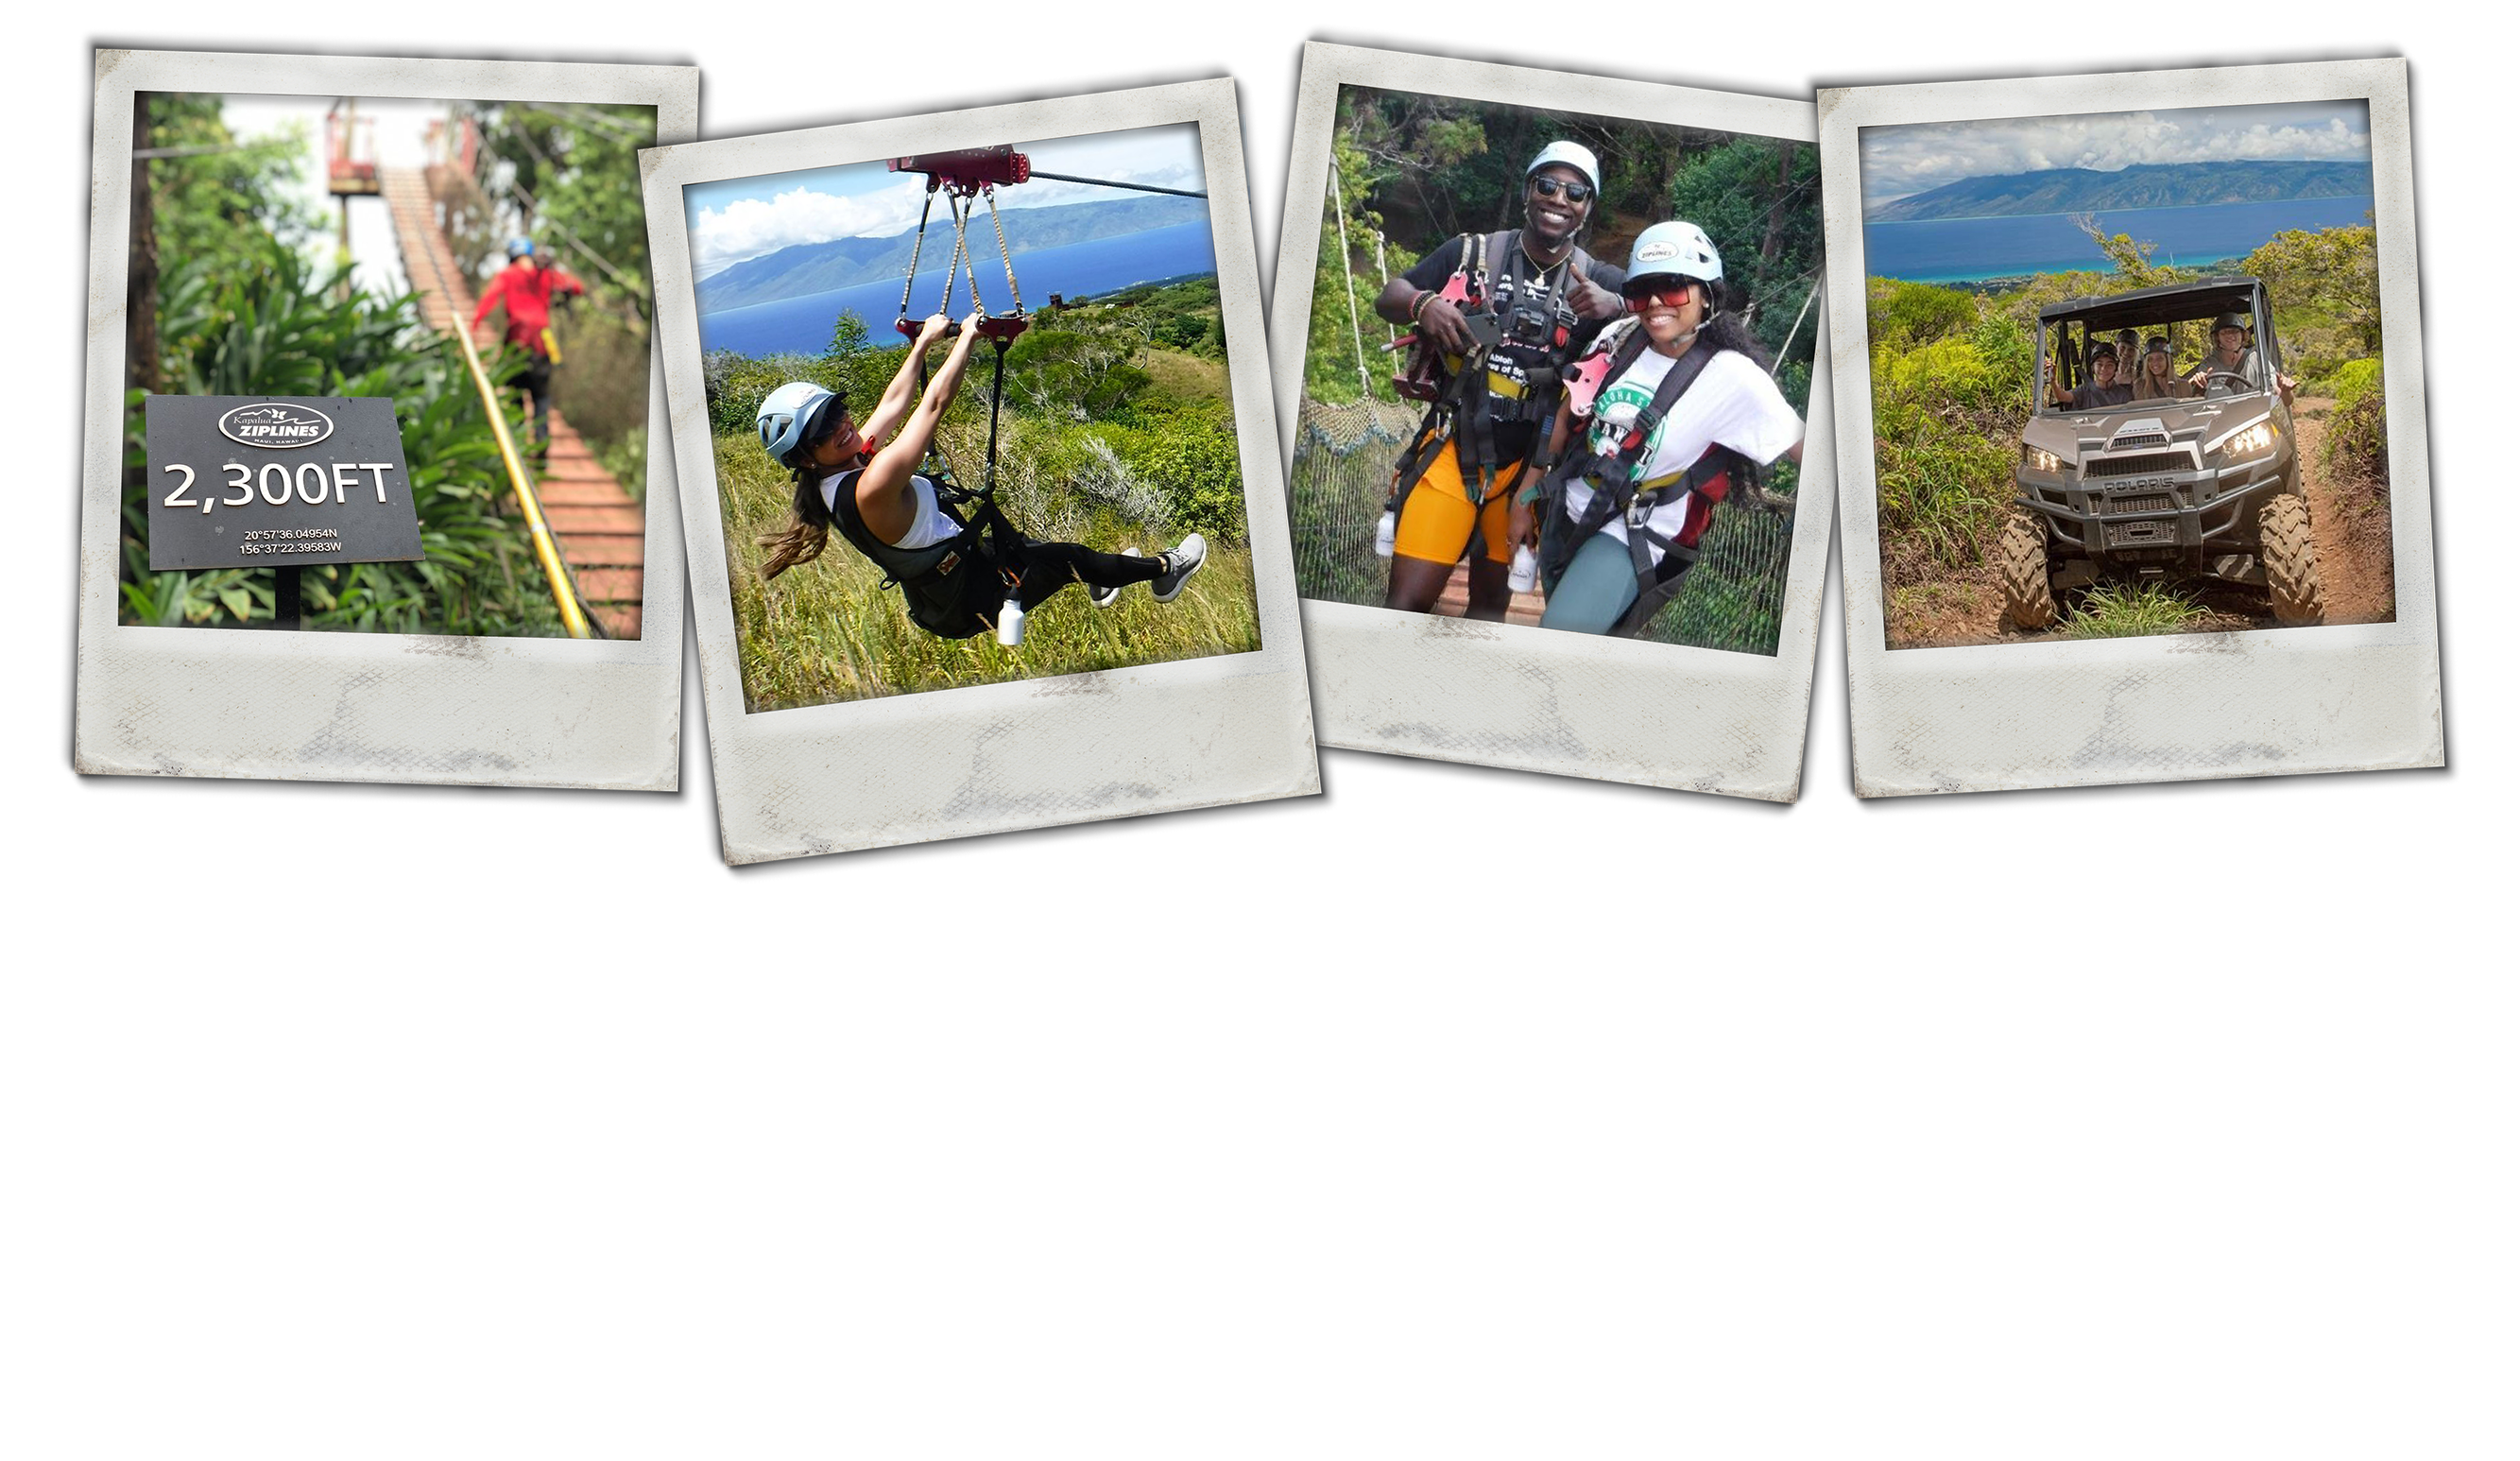 Montage of 4 photos - person climbing the ladder to zipline, smiling woman ziplining, smiling couple, people riding in ATV